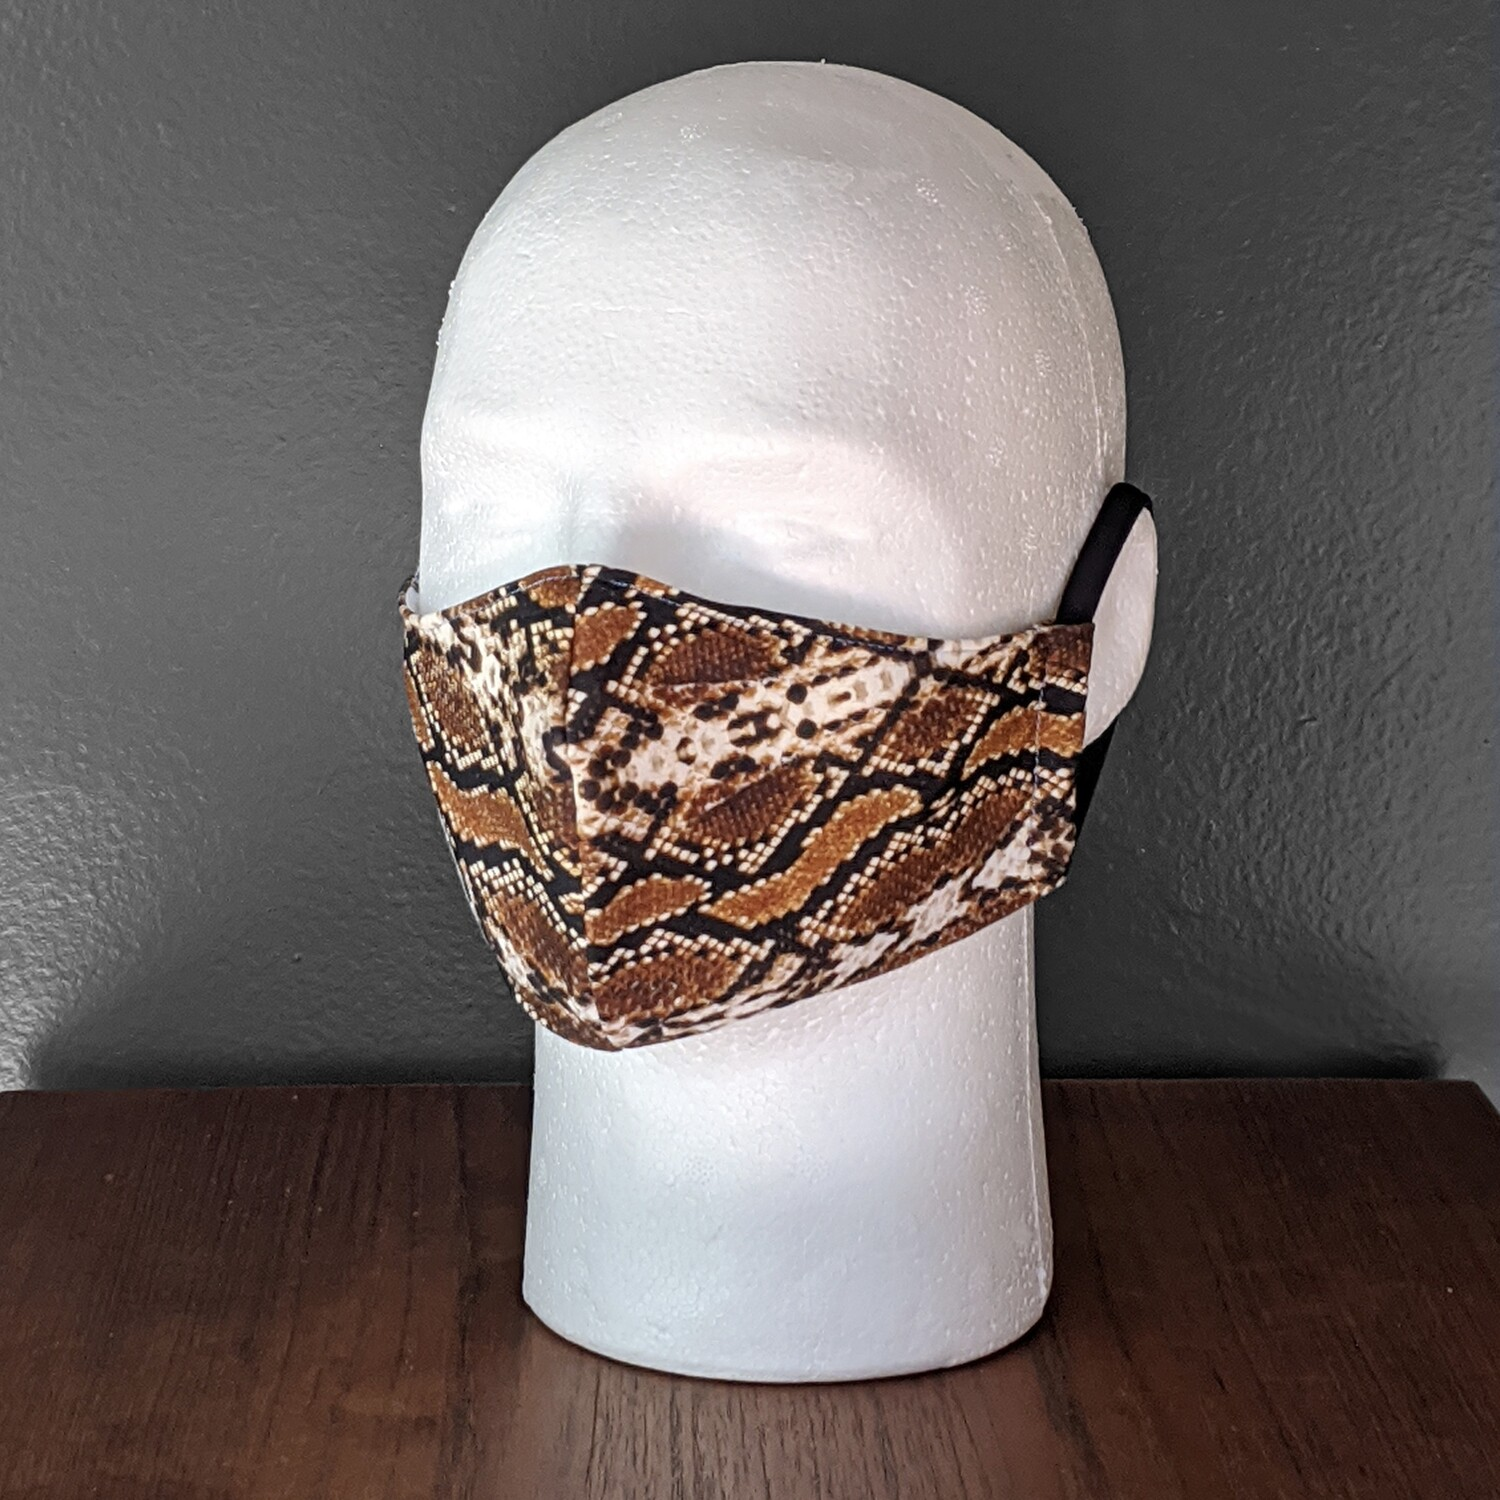 Brown Snakeprint Swimsuit Lycra Face Mask, Small, Unisex, Reusable, Double Layer for Swimming, Beach. Made in USA